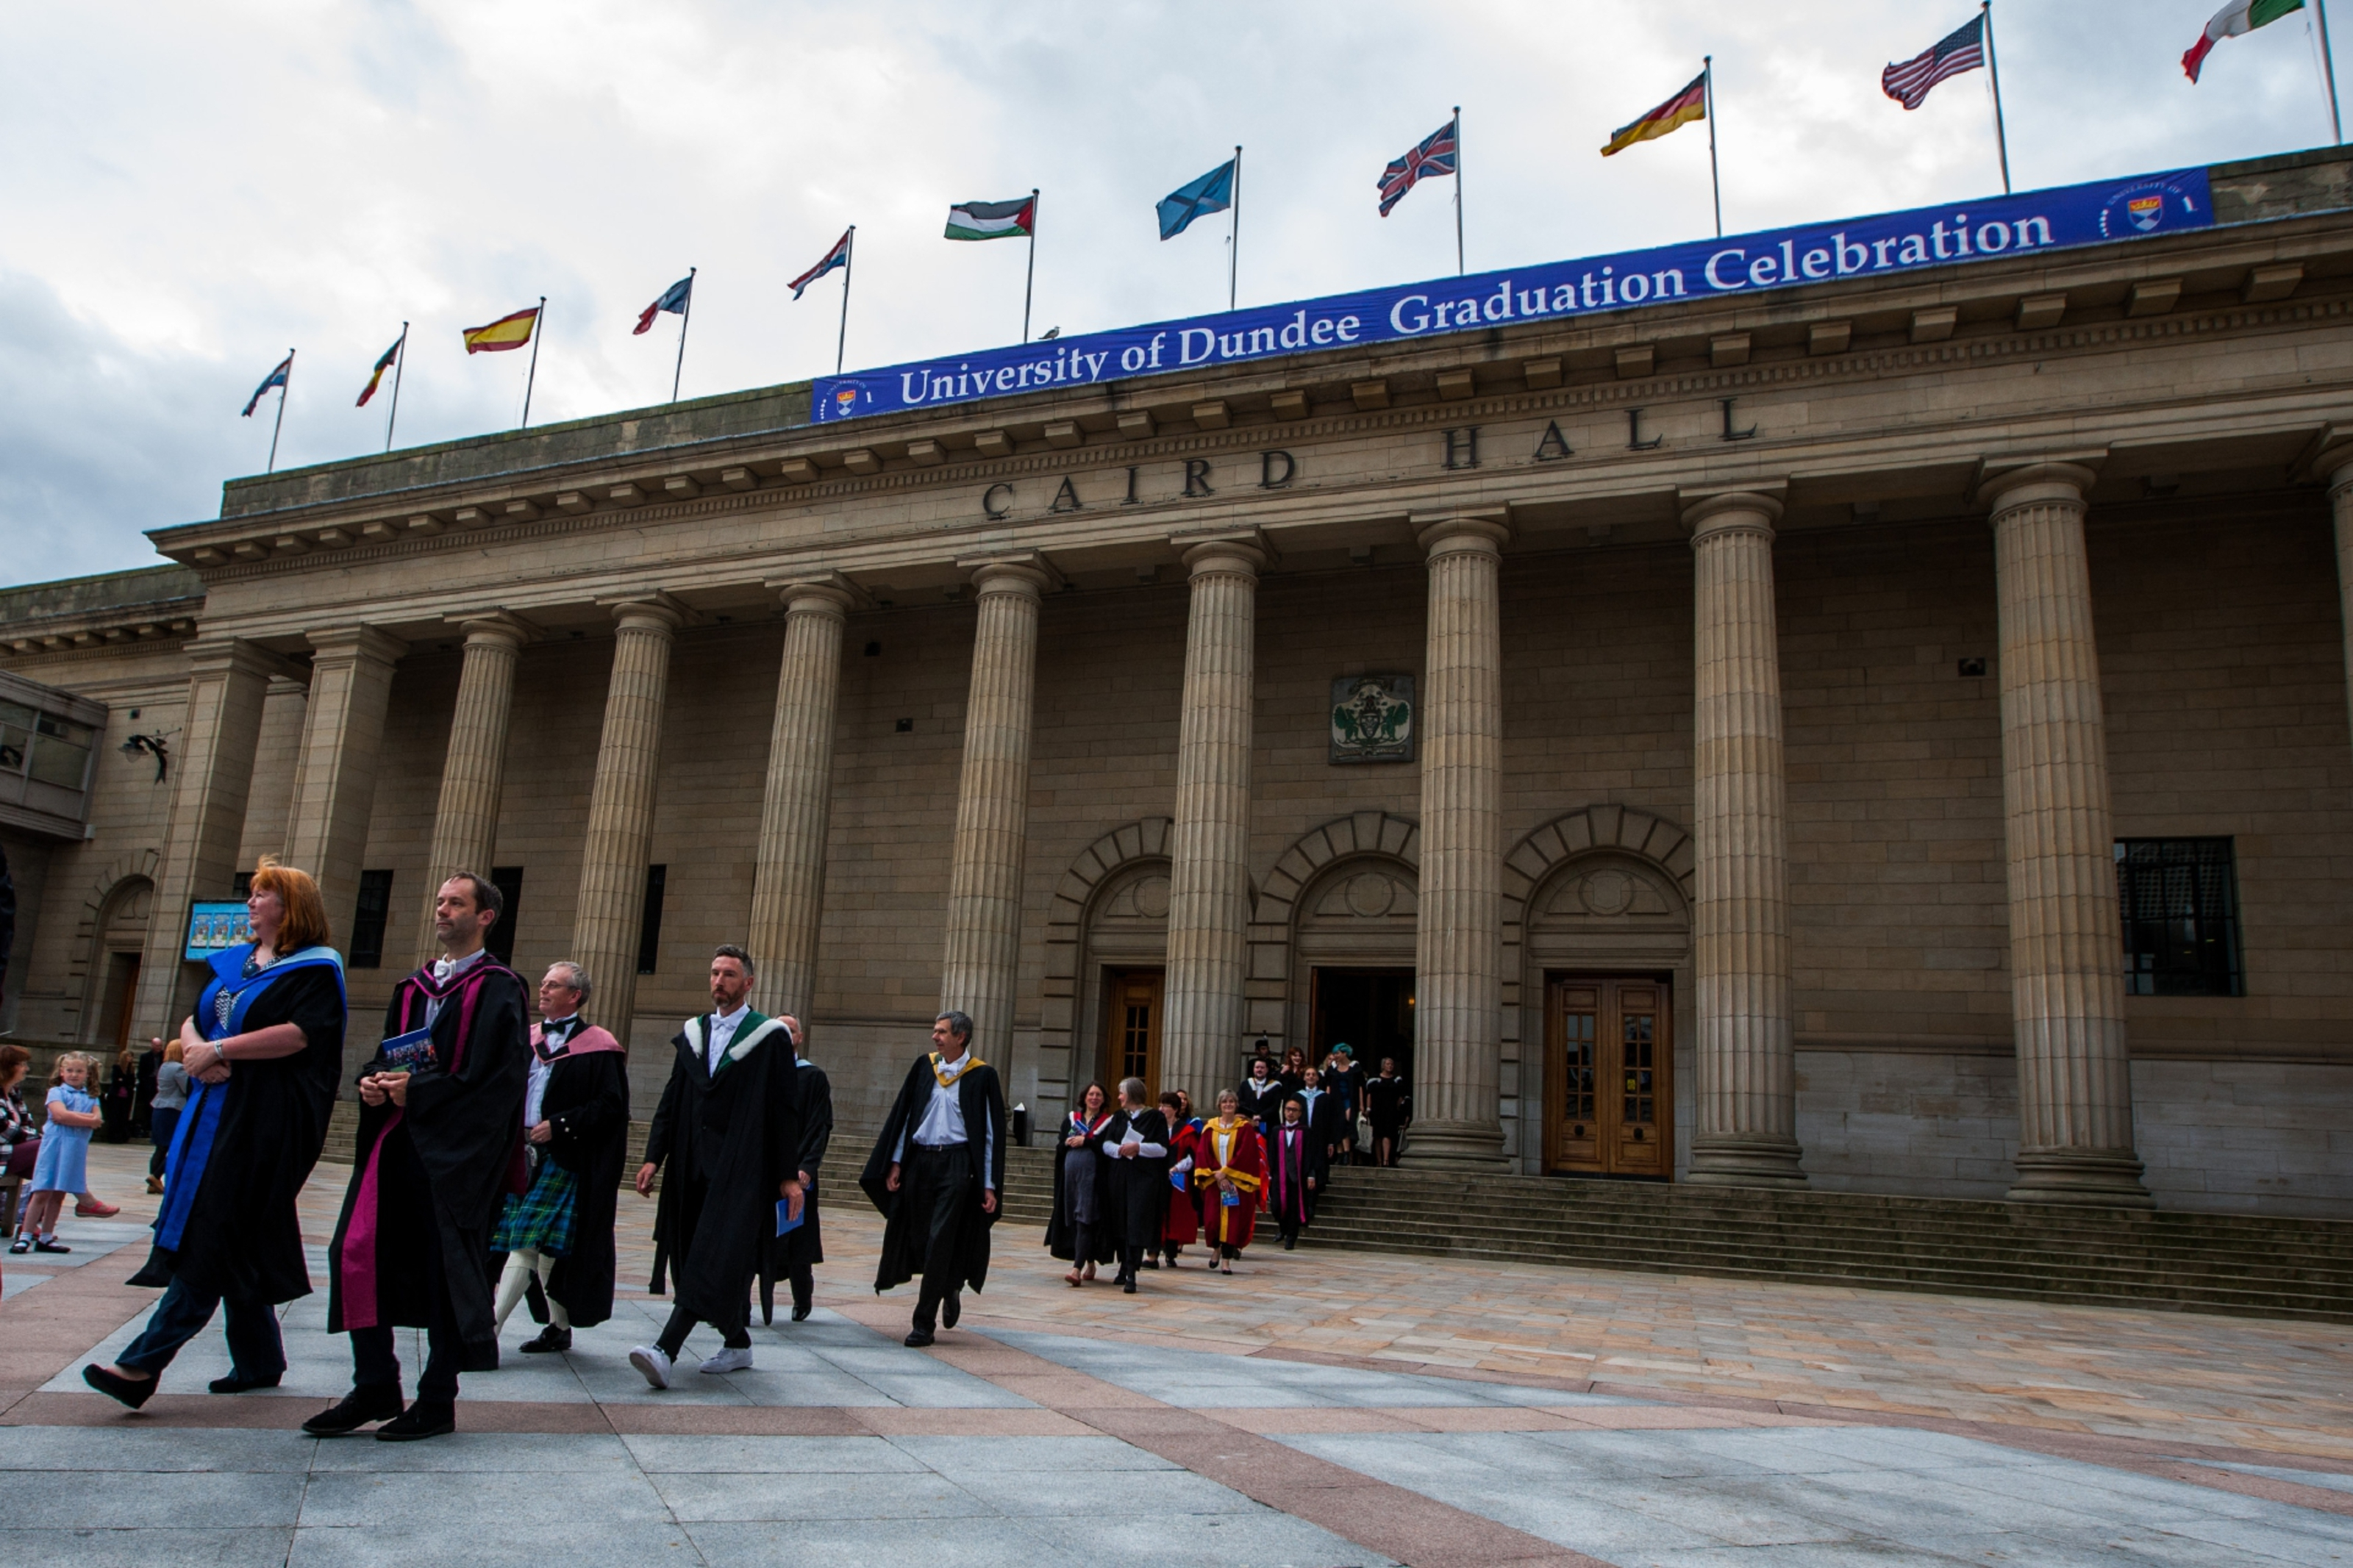 Graudates and University staff exit into the square after last year's Summer Graduation